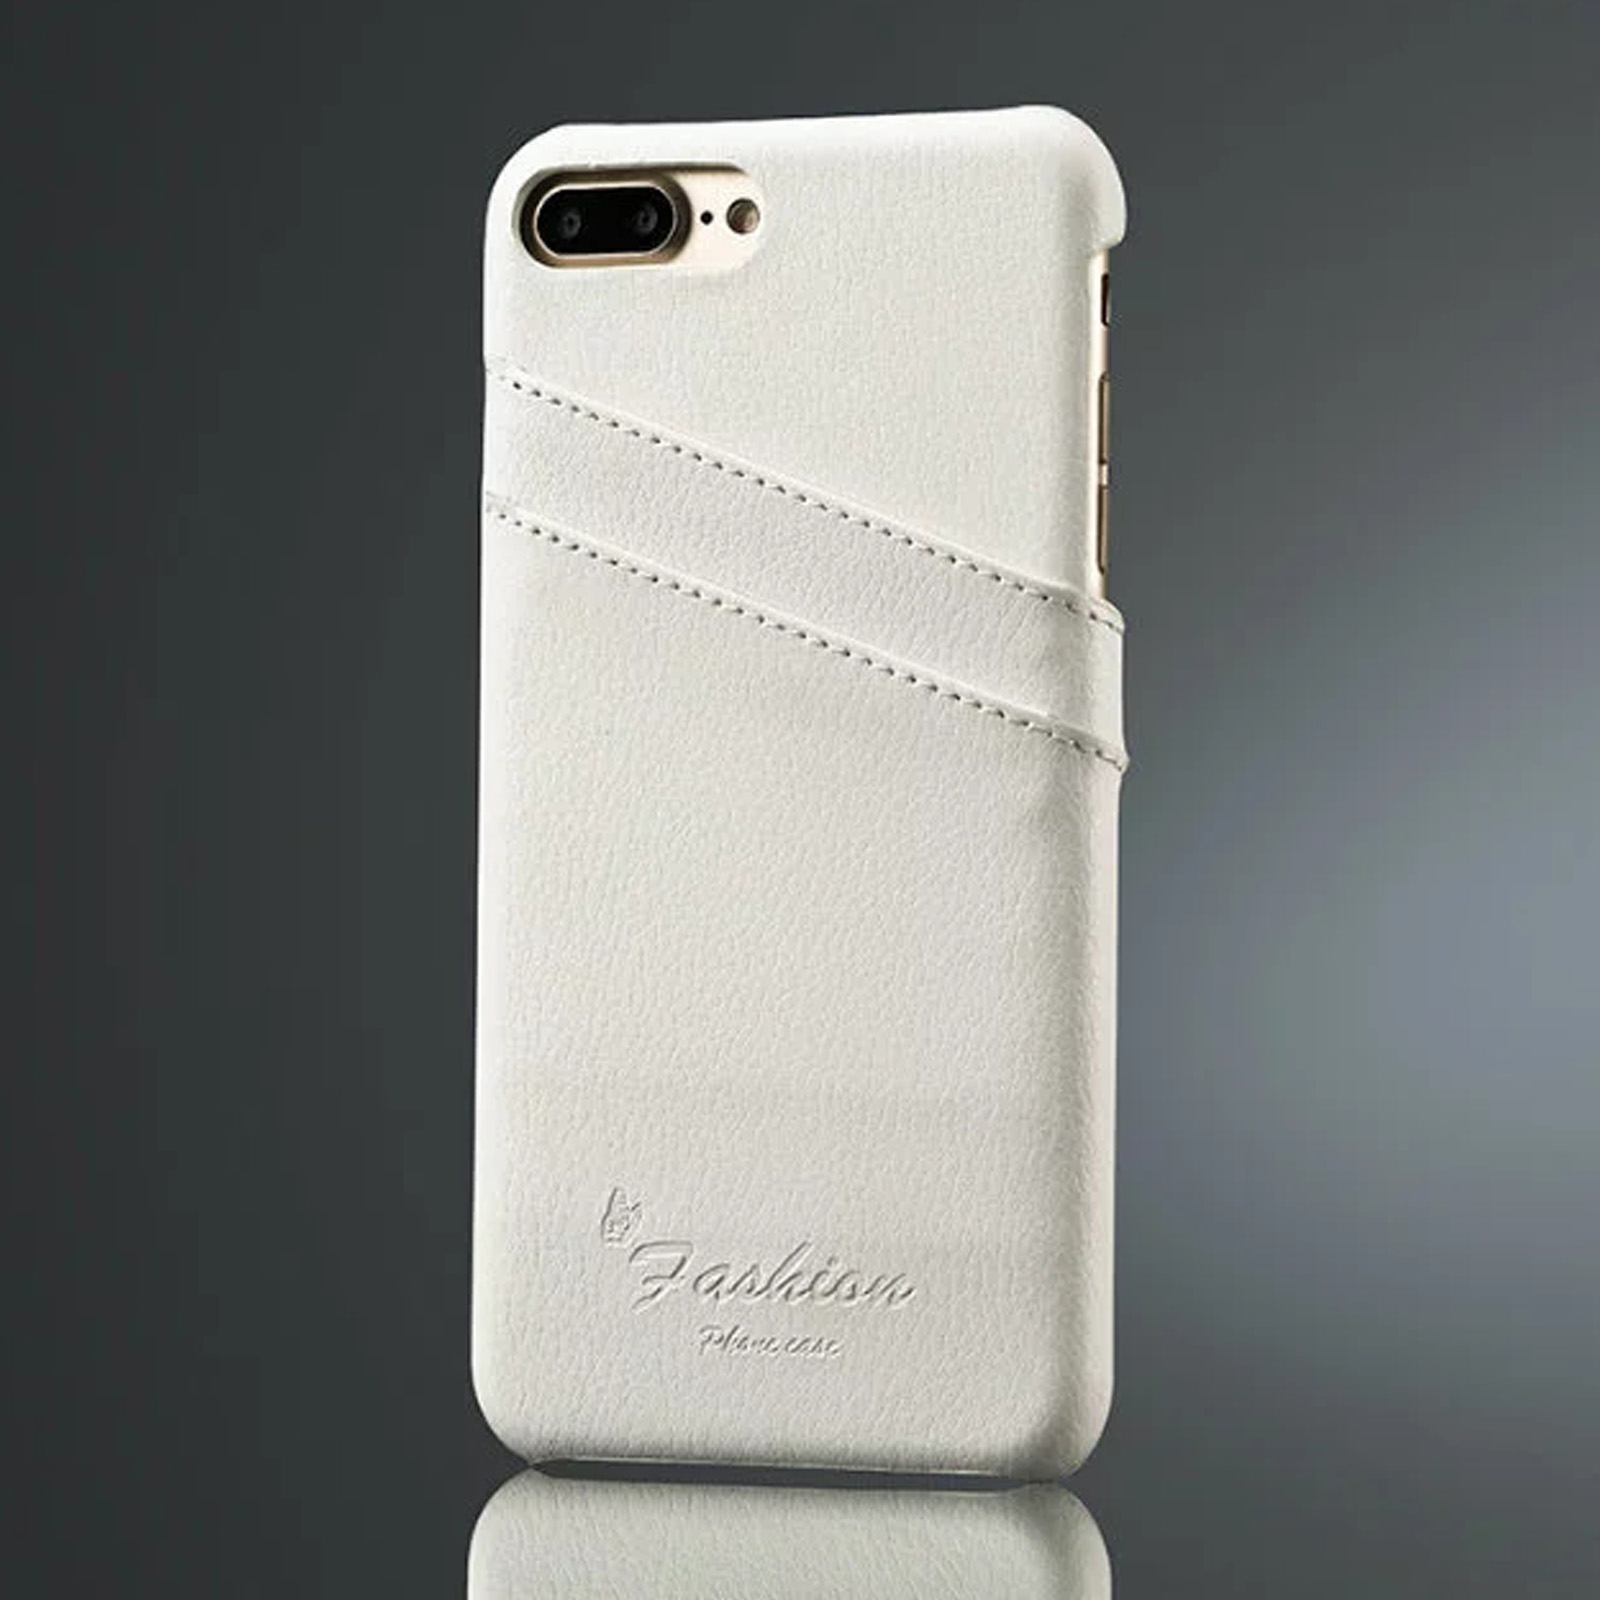 card iphone 7 case